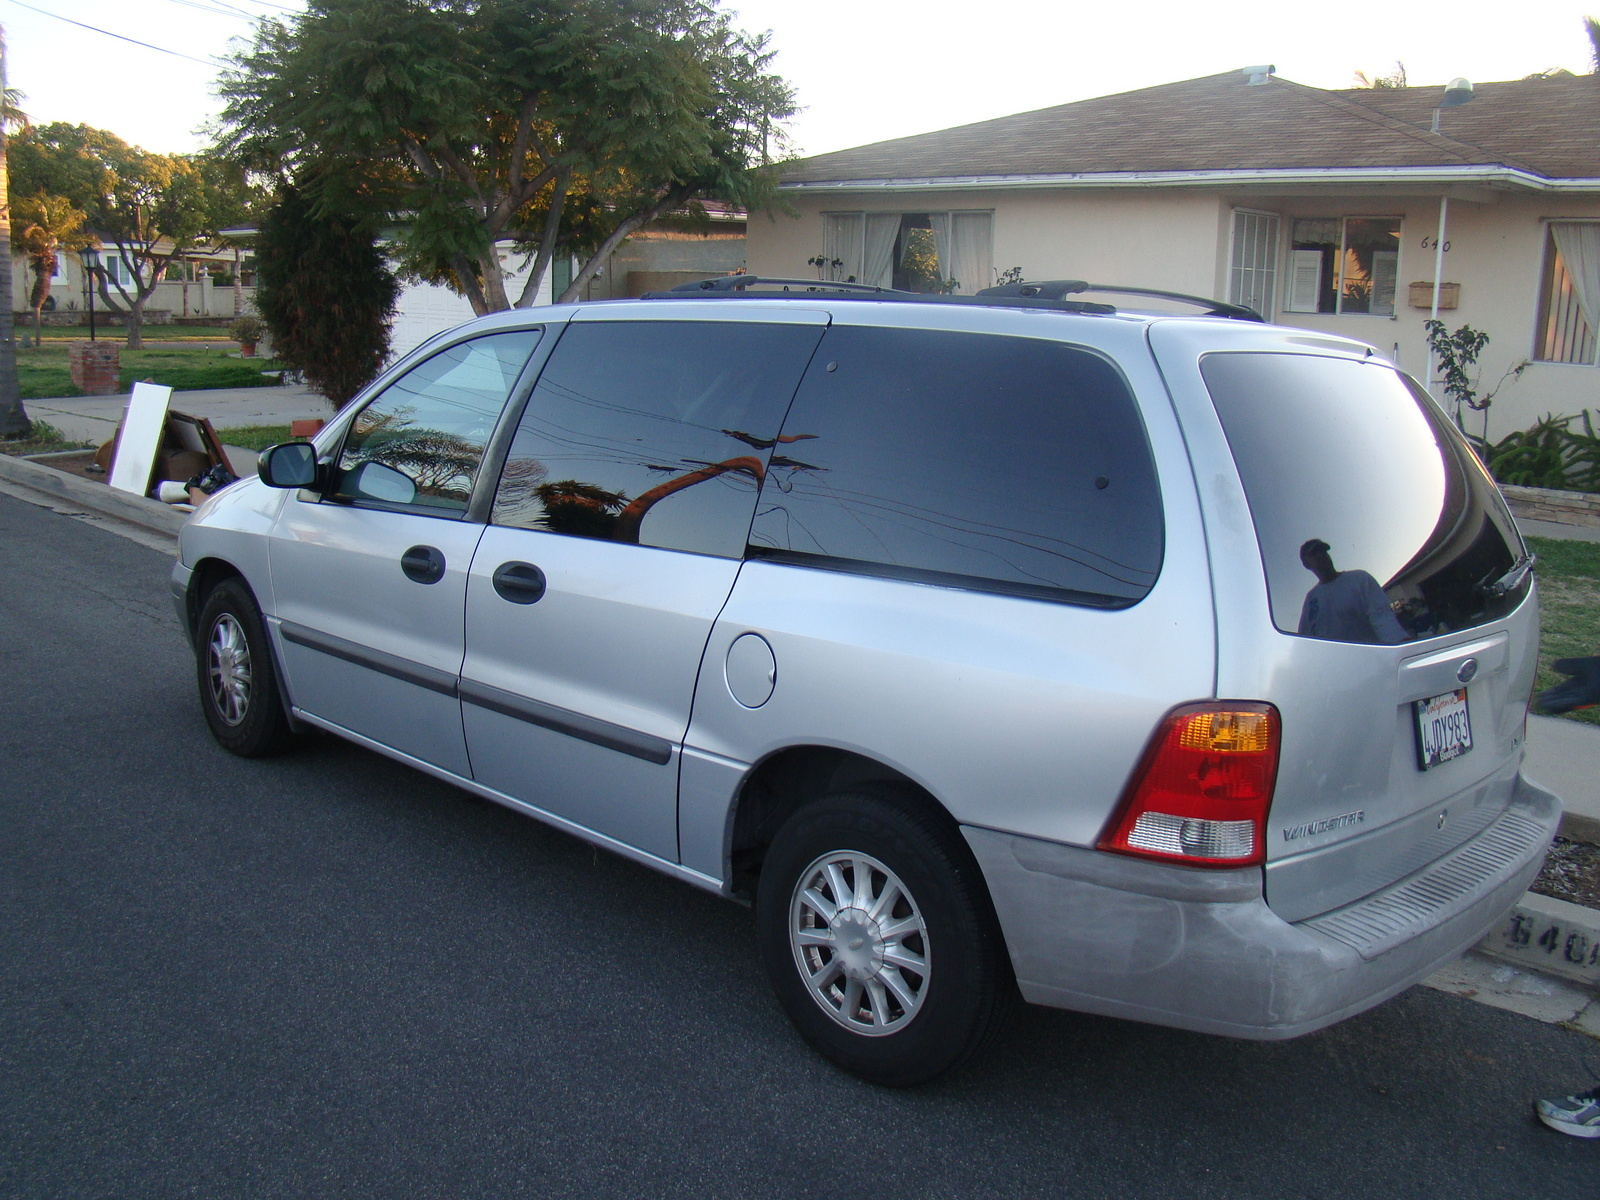 Picture of 2000 ford windstar base exterior